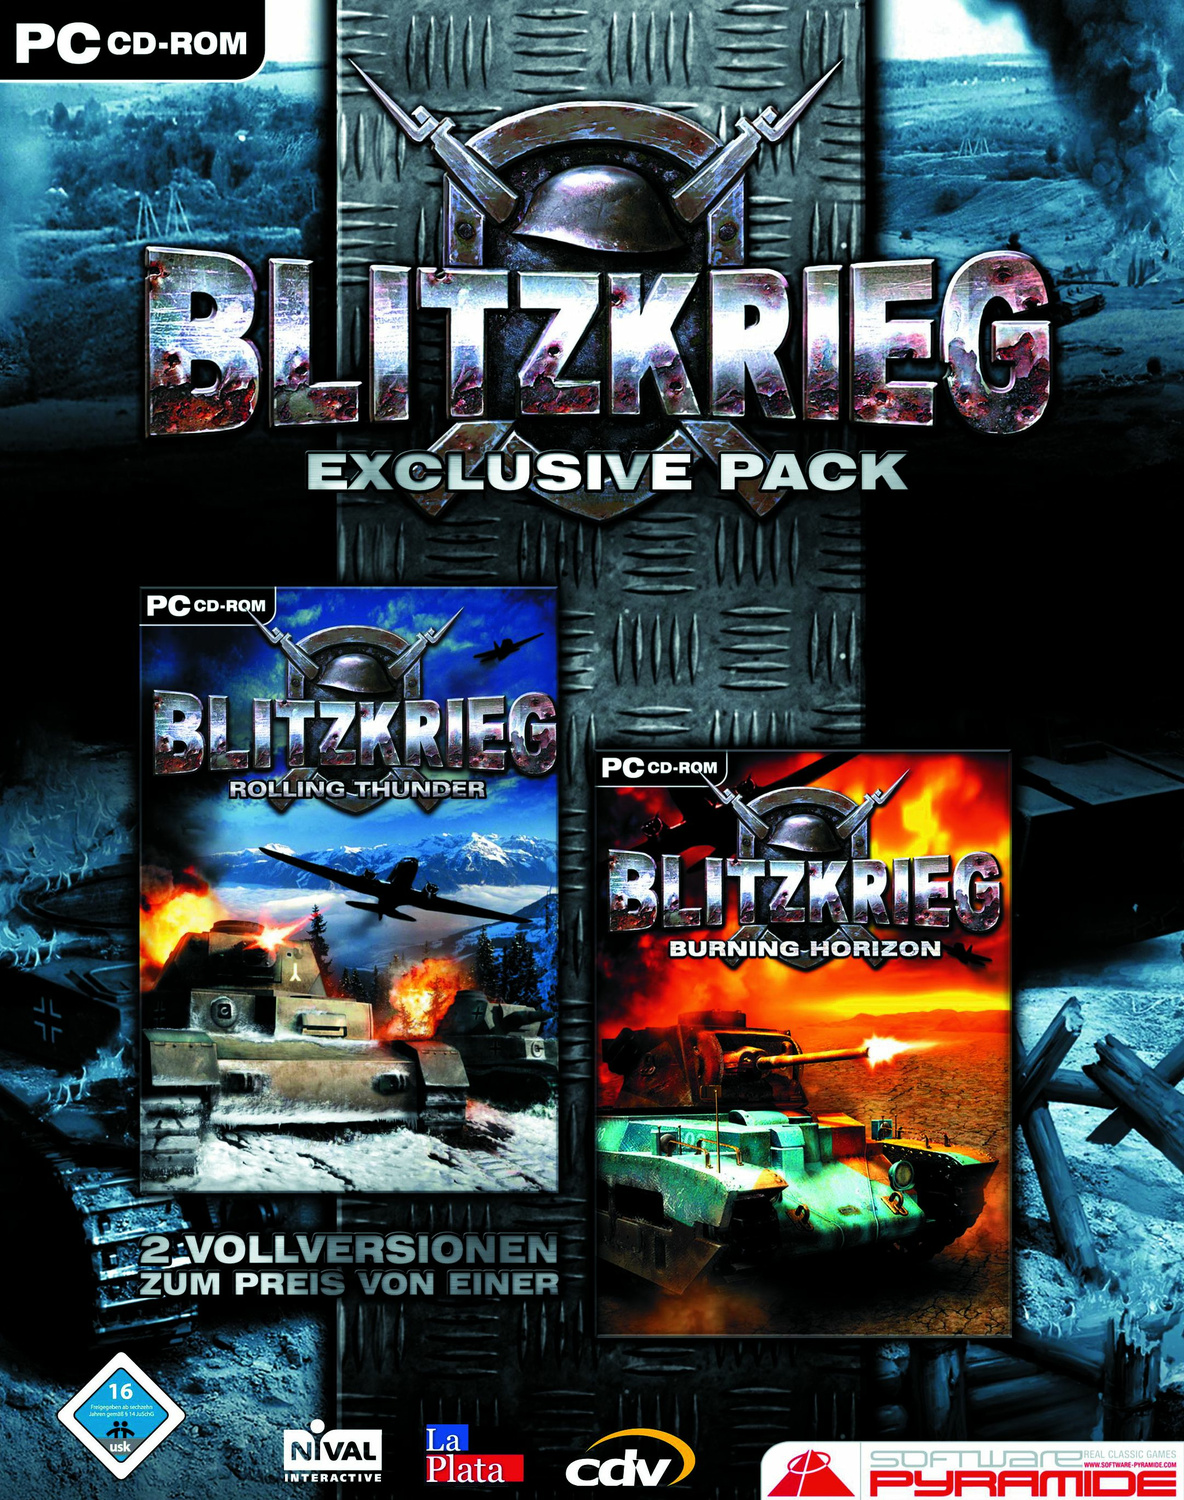 Blitzkrieg Exclusive Pack Rolling Thunder + Burning Horizon